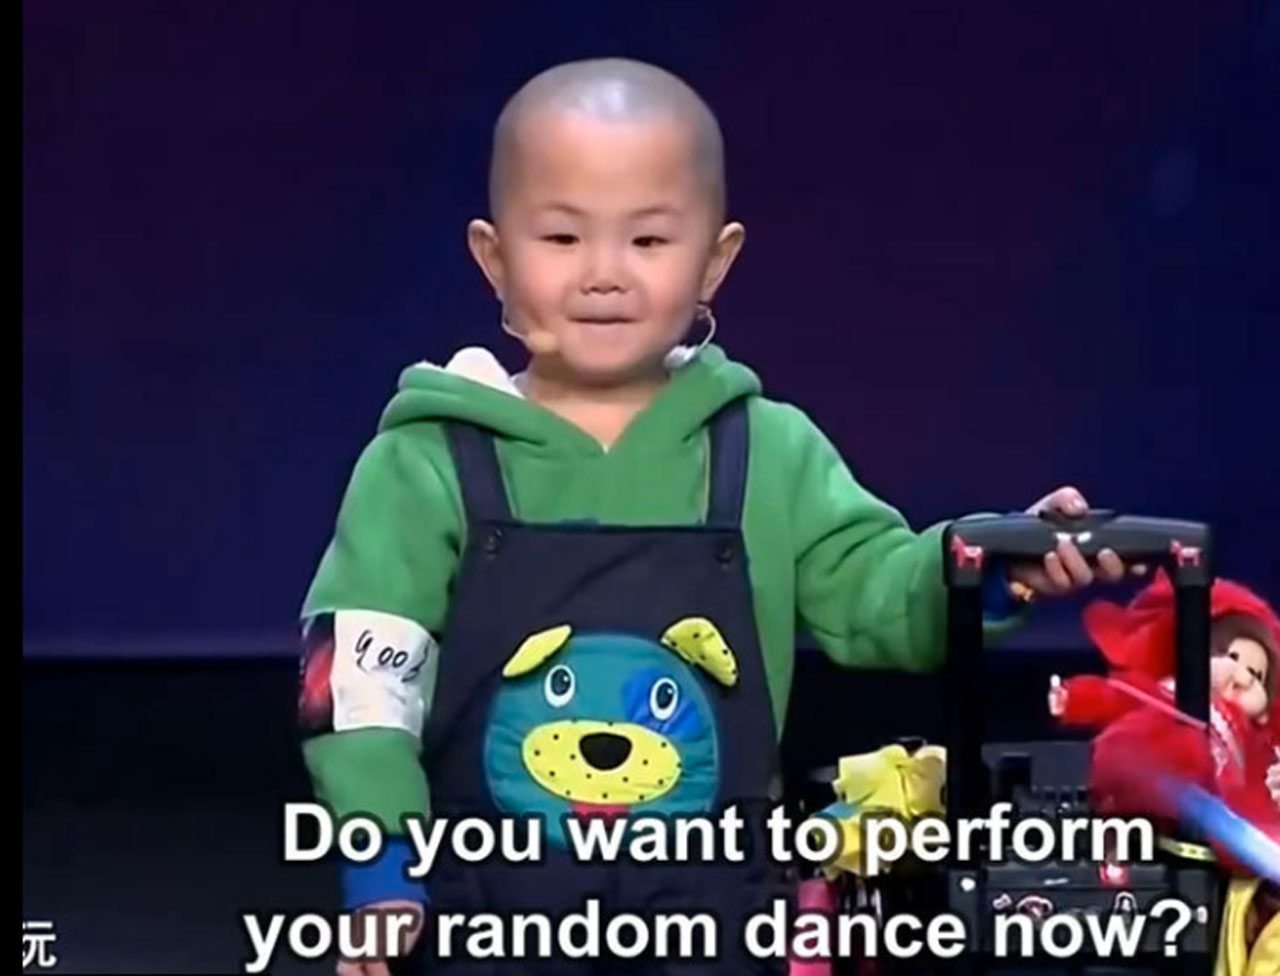 Adorable 3 year old is very happy to dance!